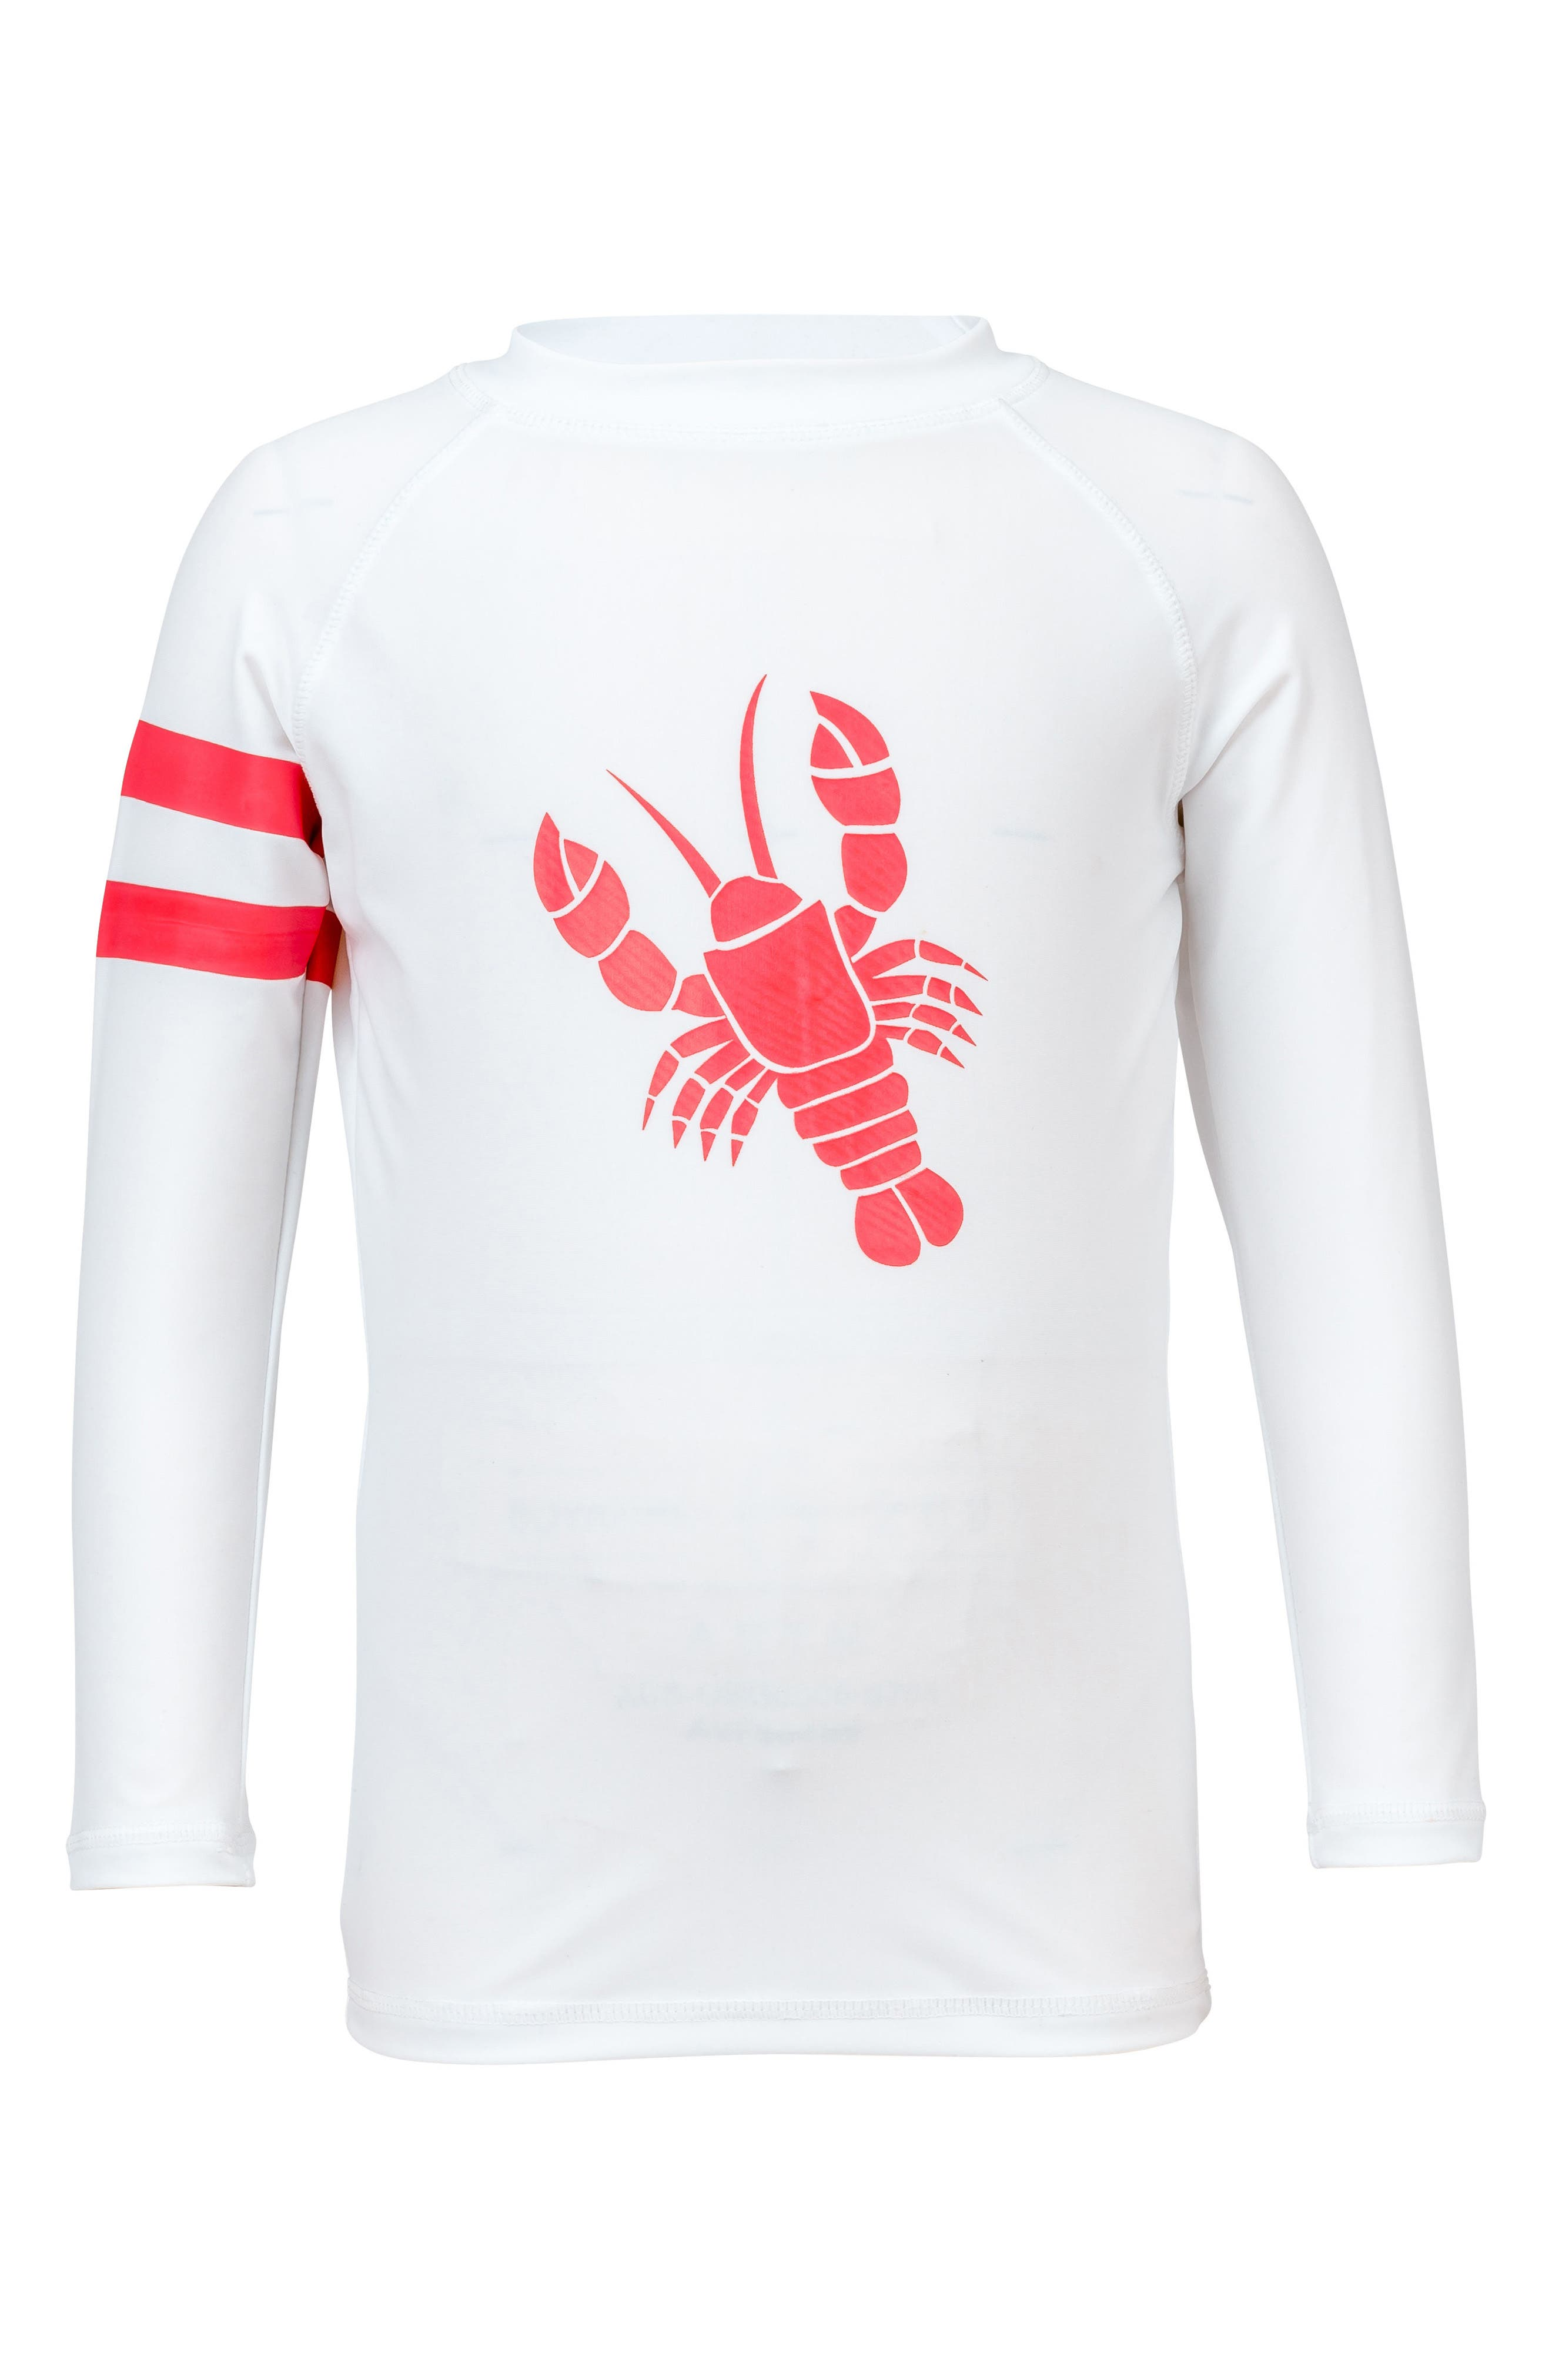 Lobster Long Sleeve Rashguard,                         Main,                         color, White/ Red